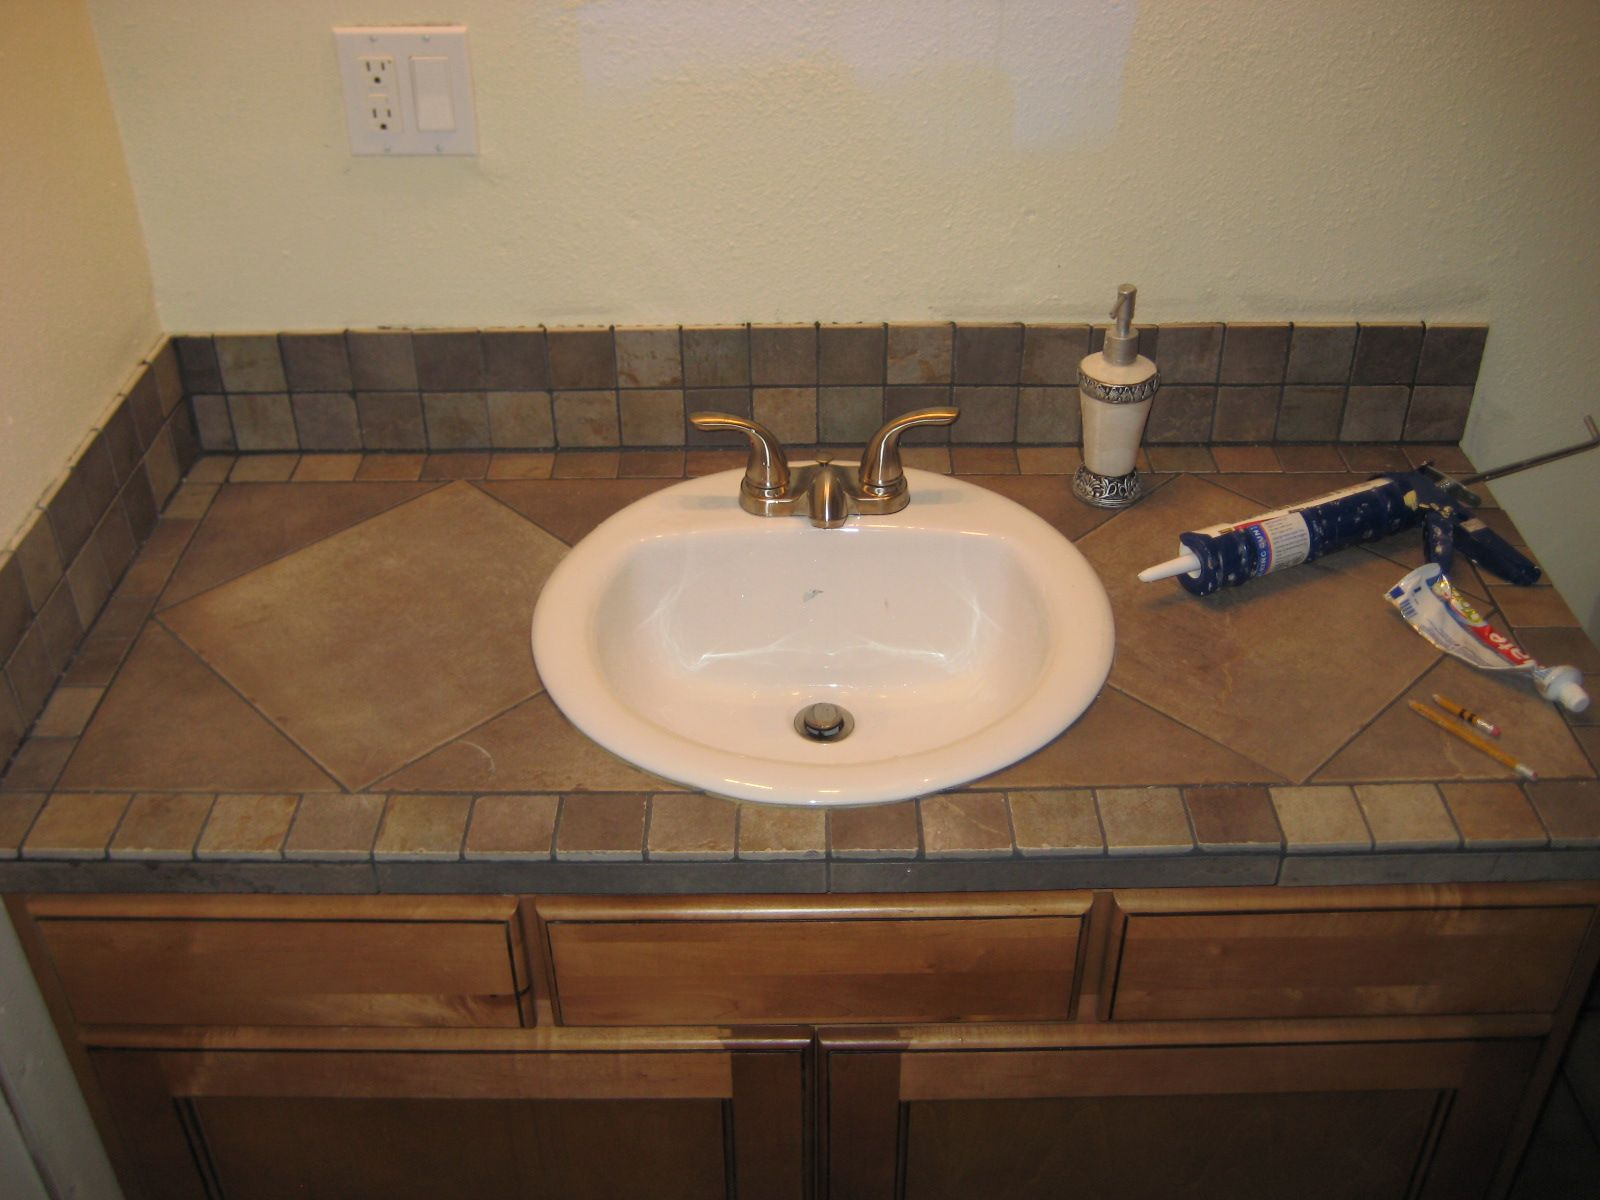 Diy bathroom tile - Latest Posts Under Bathroom Tile